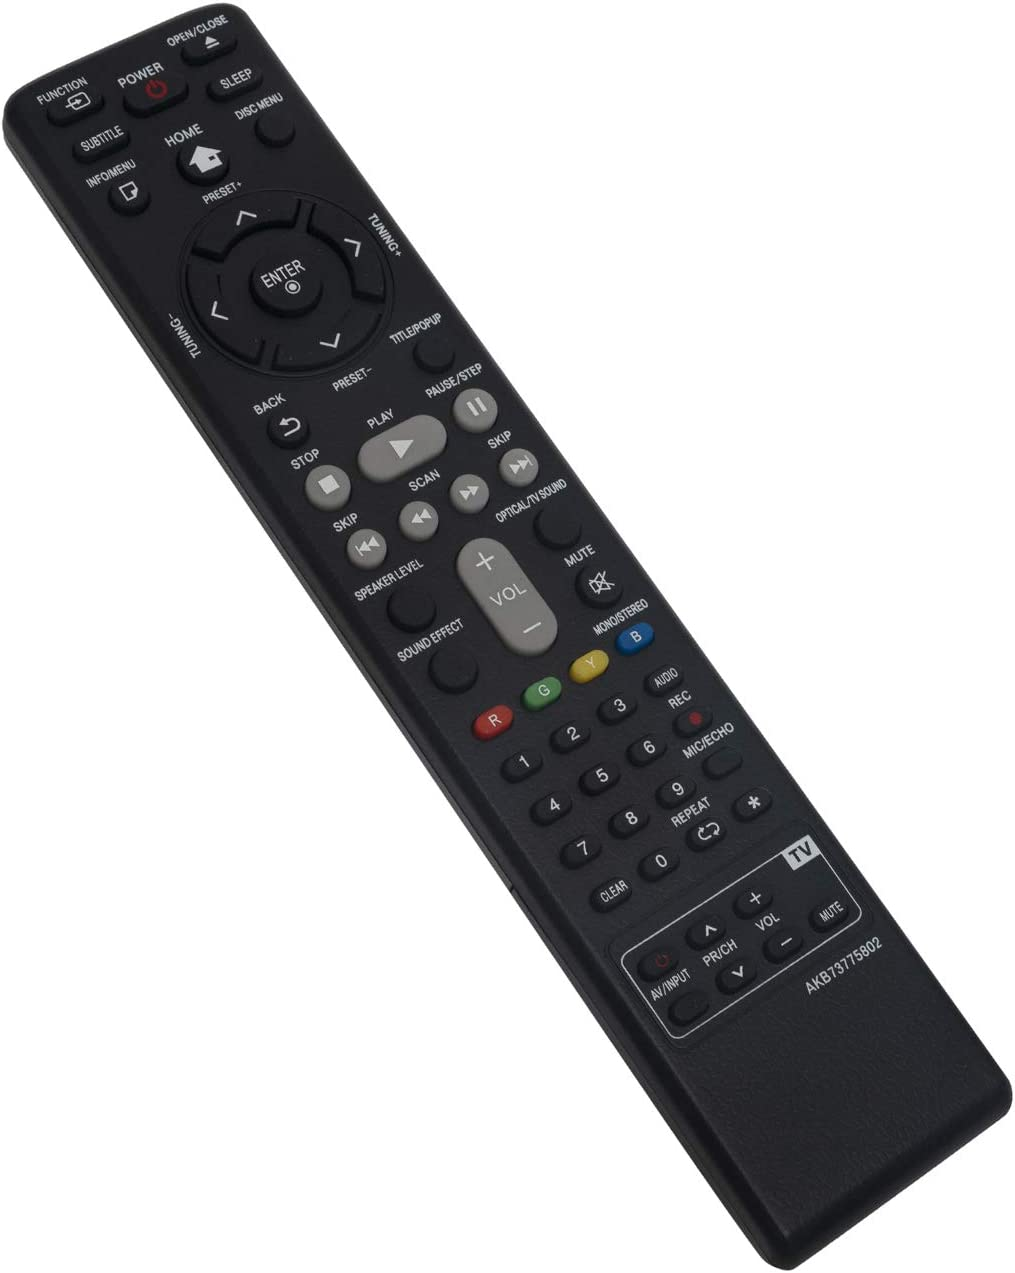 AKB73775802 Replace Remote Control fit for LG 3D Blu-ray Disc DVD Player Home Cinema Theater System BH4030S BH4430P BH4530T BH5140 BH5140S BH5140SF0 BH5440P BH5540T BH6230S BH6240S S43S1-W S43S2-S